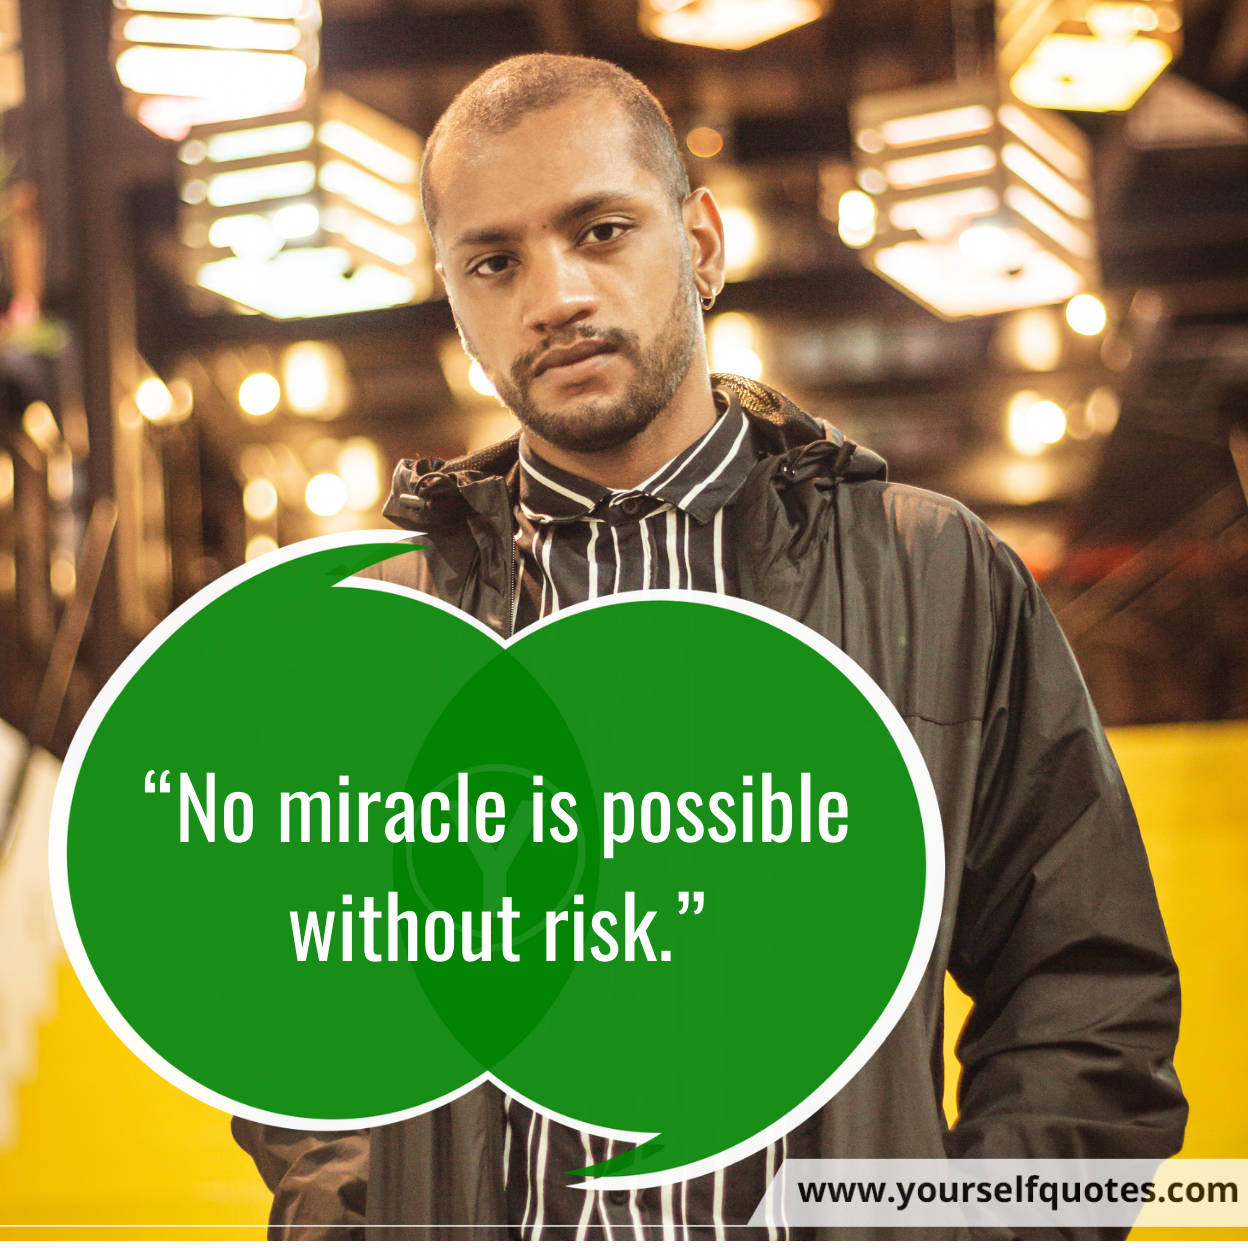 Inspirational Quotes On Risks Photos